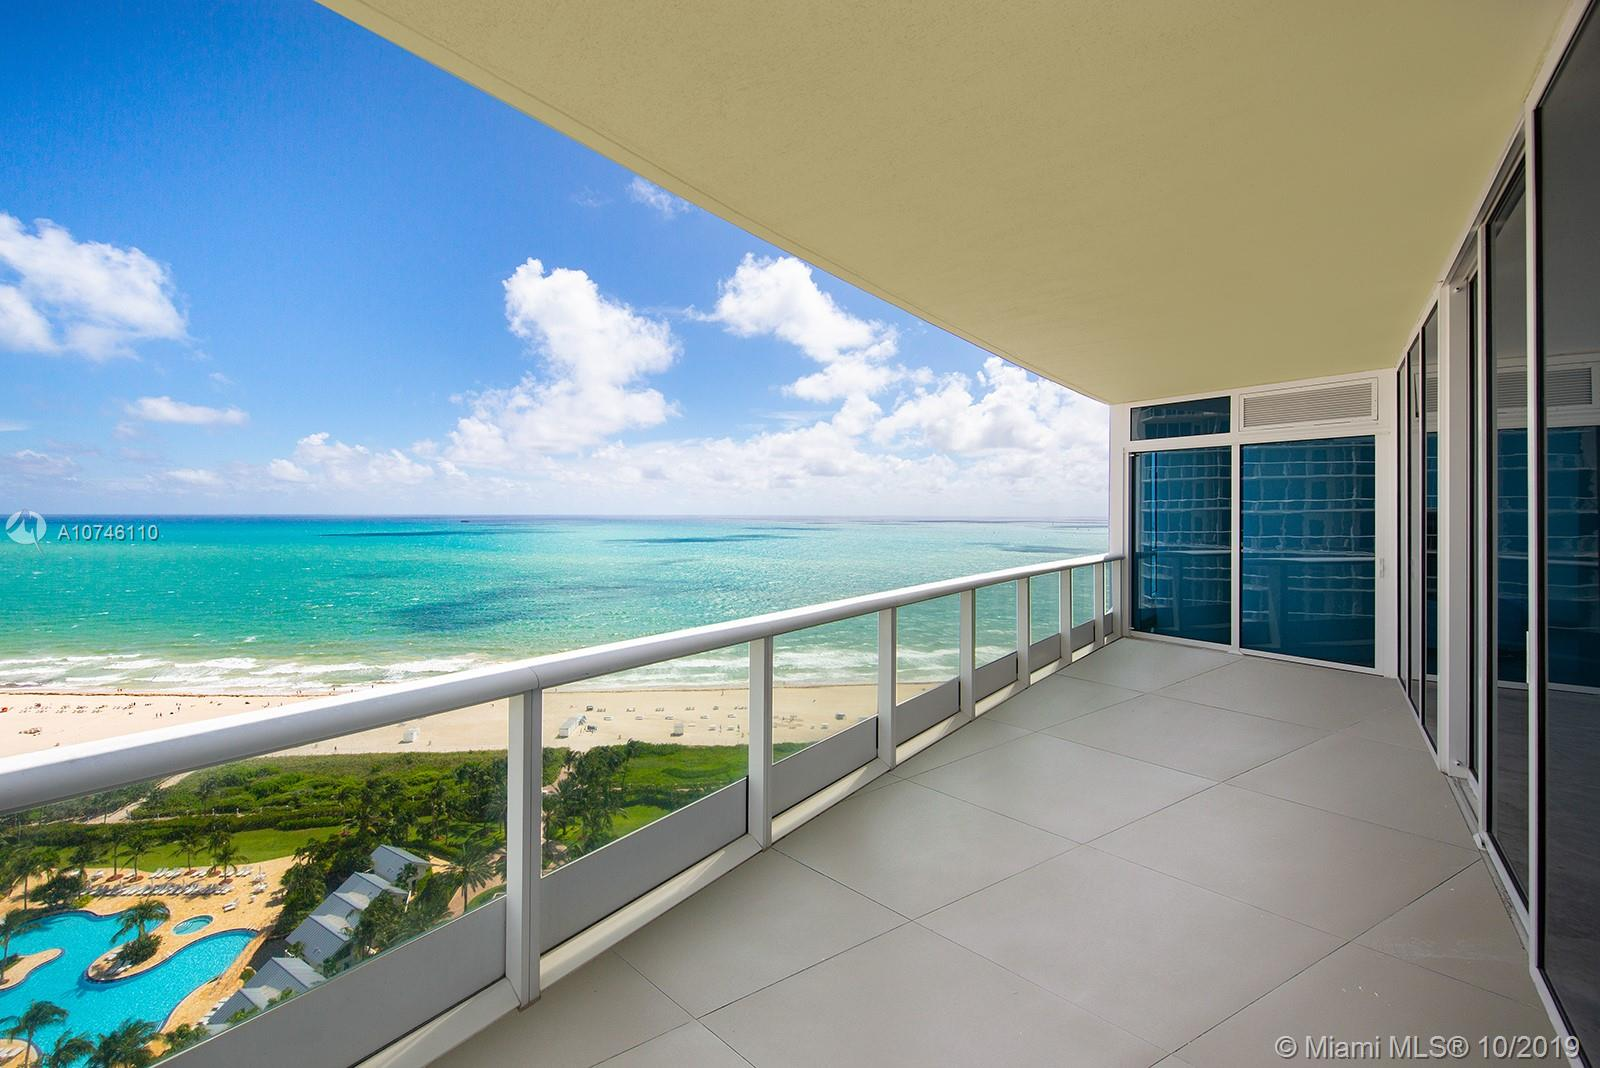 100 S Pointe Dr, Unit #2008 Luxury Real Estate